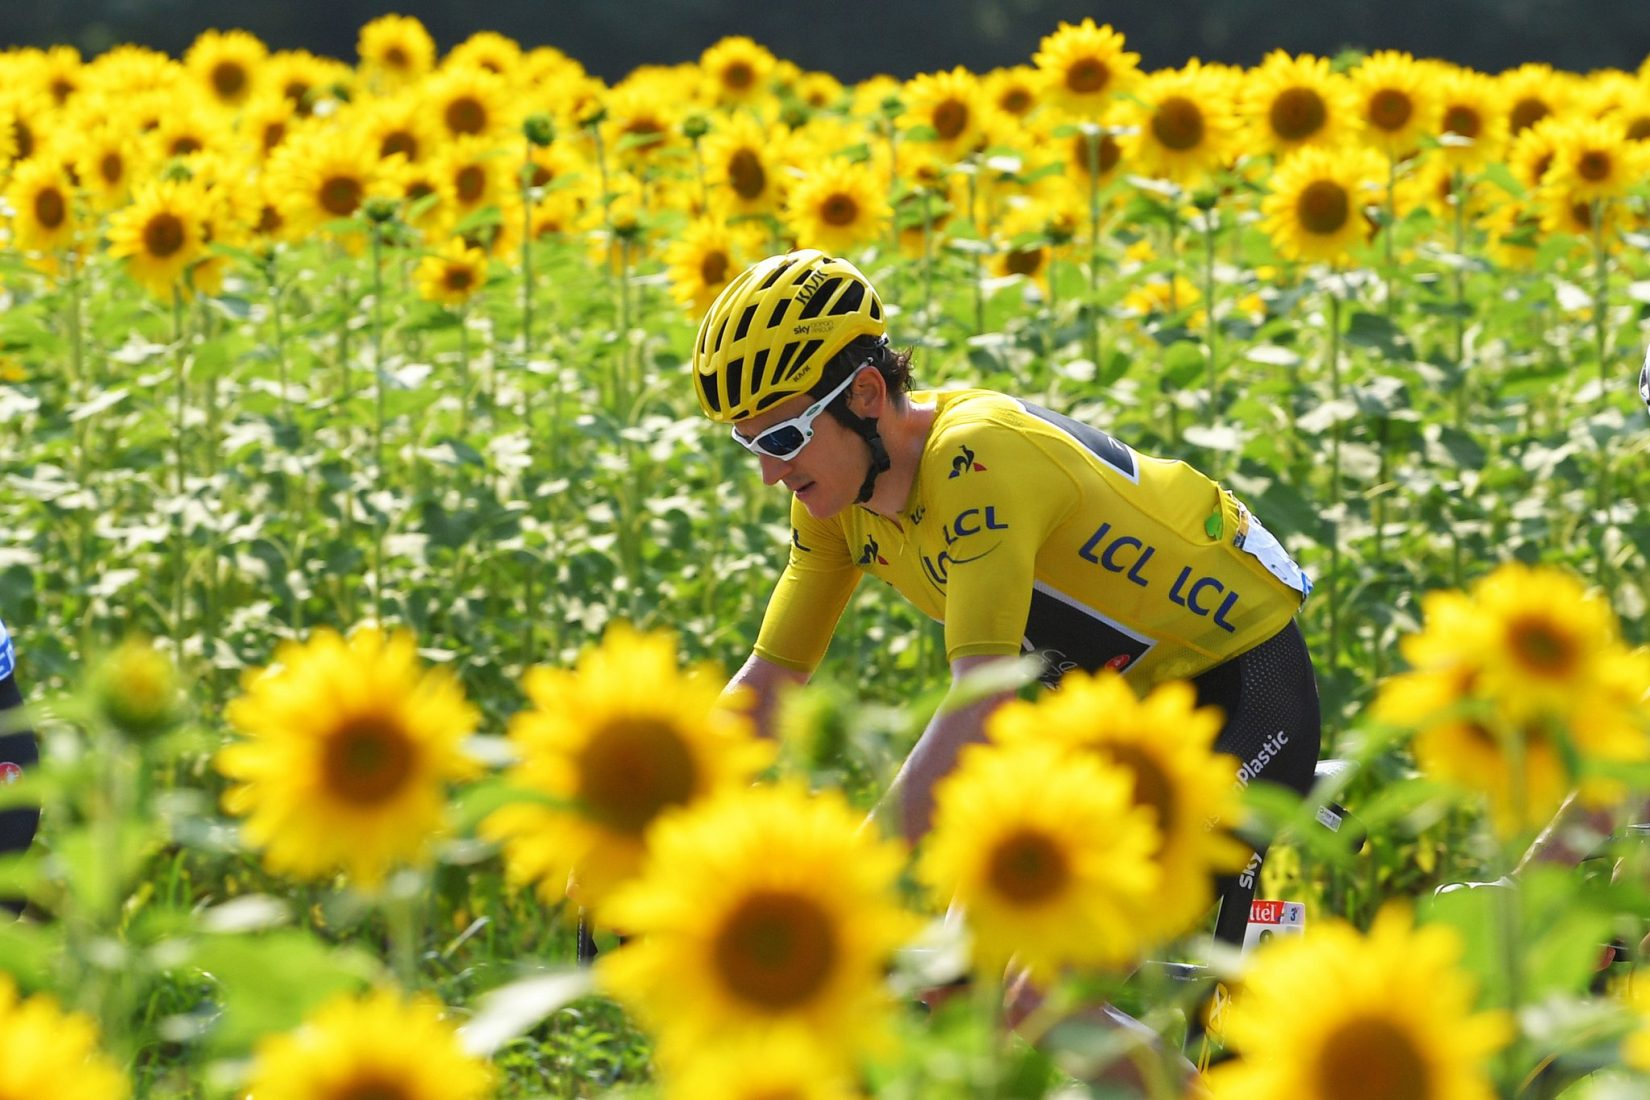 Tour de France 2019: elenco partenti